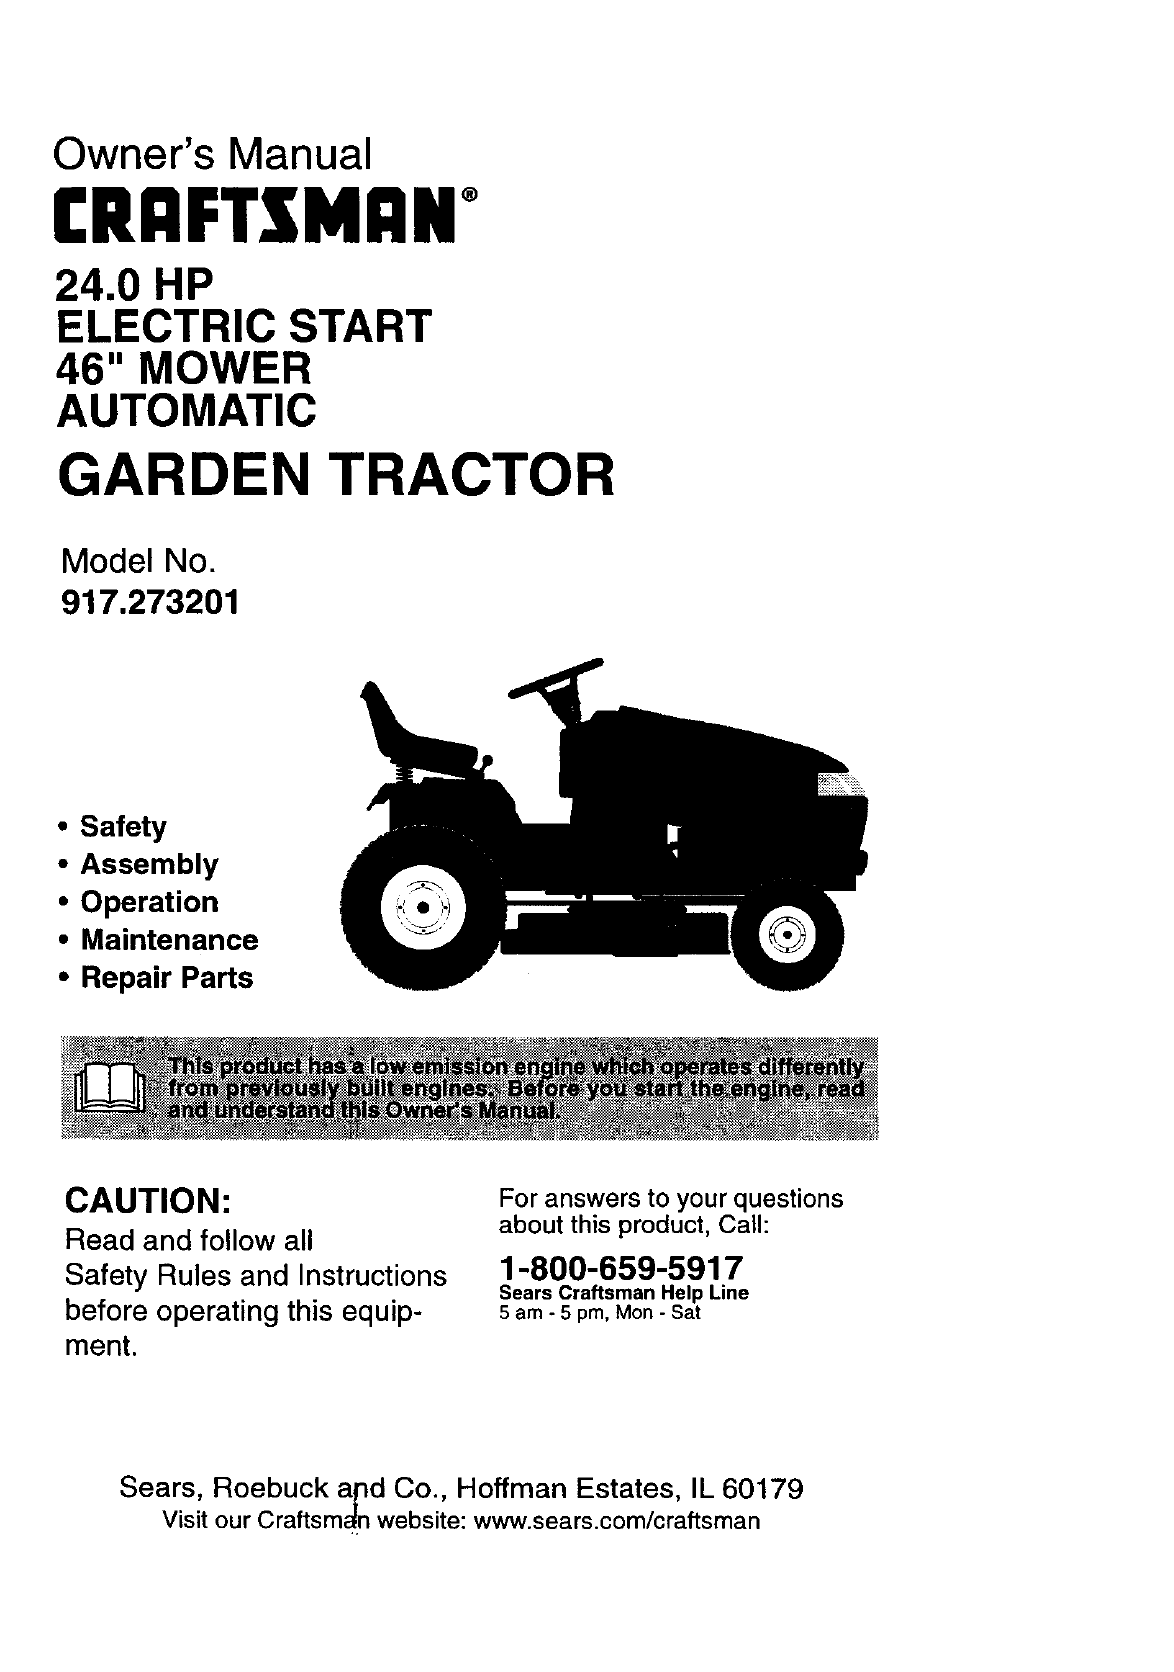 Craftsman 917273201 User Manual 24 Hp Electric Start 46 Mower Lawn Electrical Schematics Owners